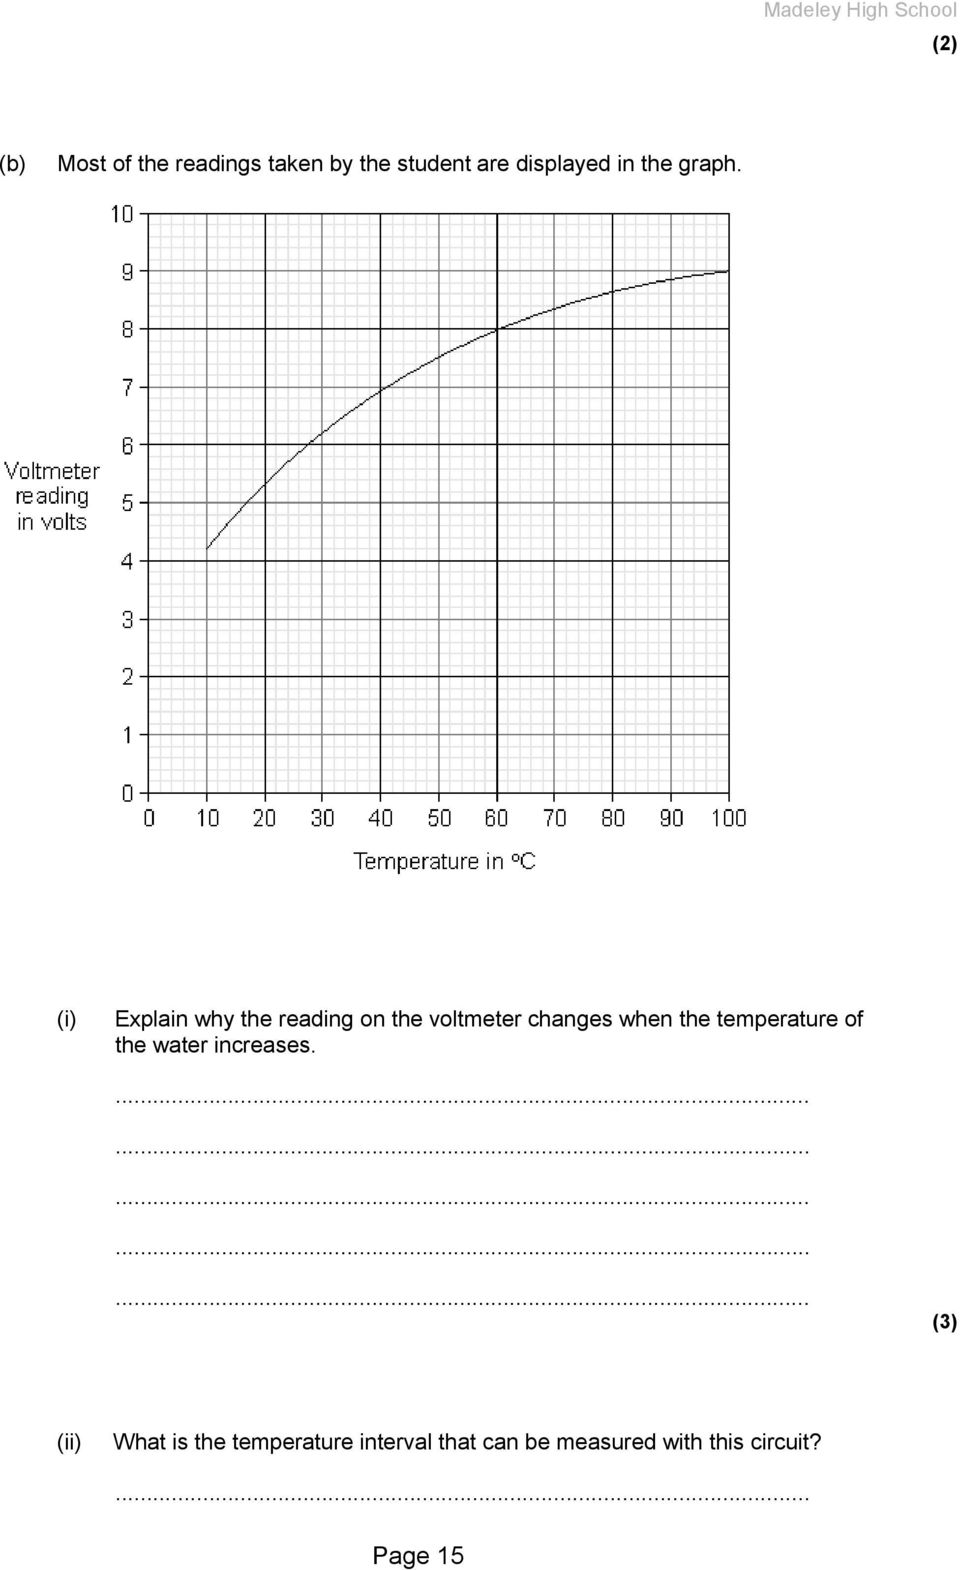 (i) Explain why the reading on the voltmeter changes when the